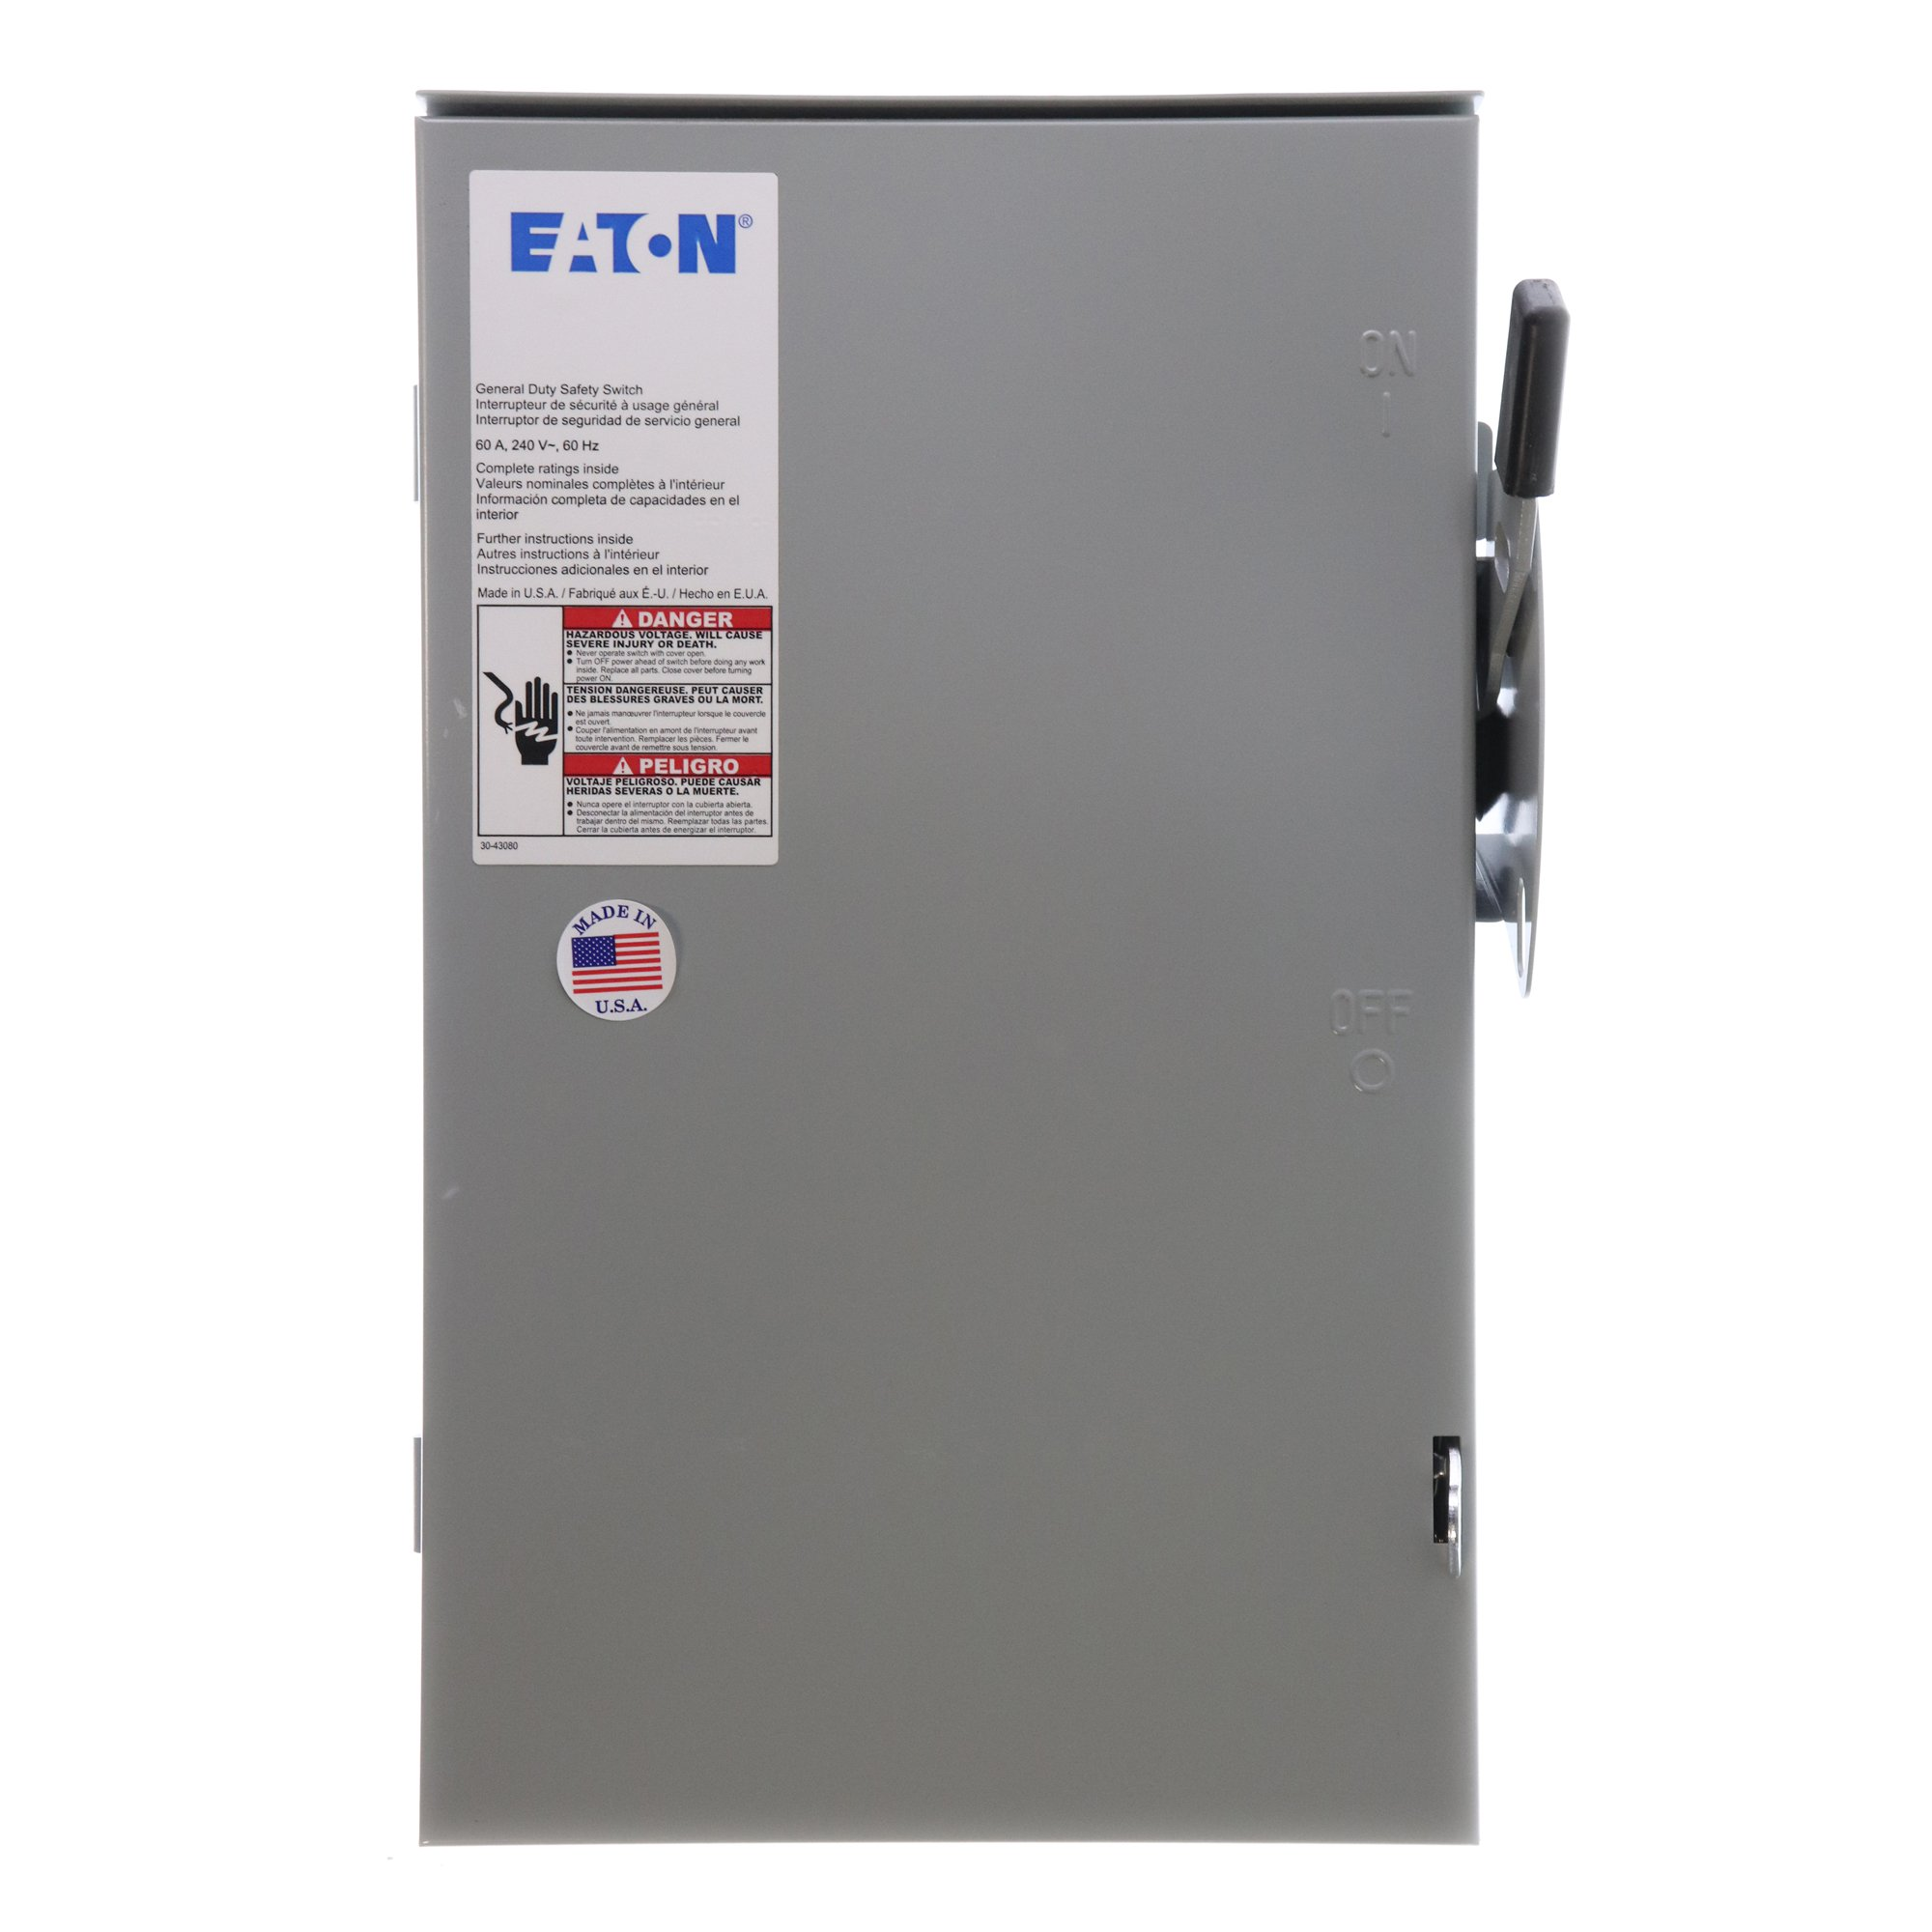 Eaton DG322NRB 4 Wire 3 Pole Fusible B Series General-Duty Safety Switch 240 Volt AC 60 Amp NEMA 3R by Eaton (Image #1)